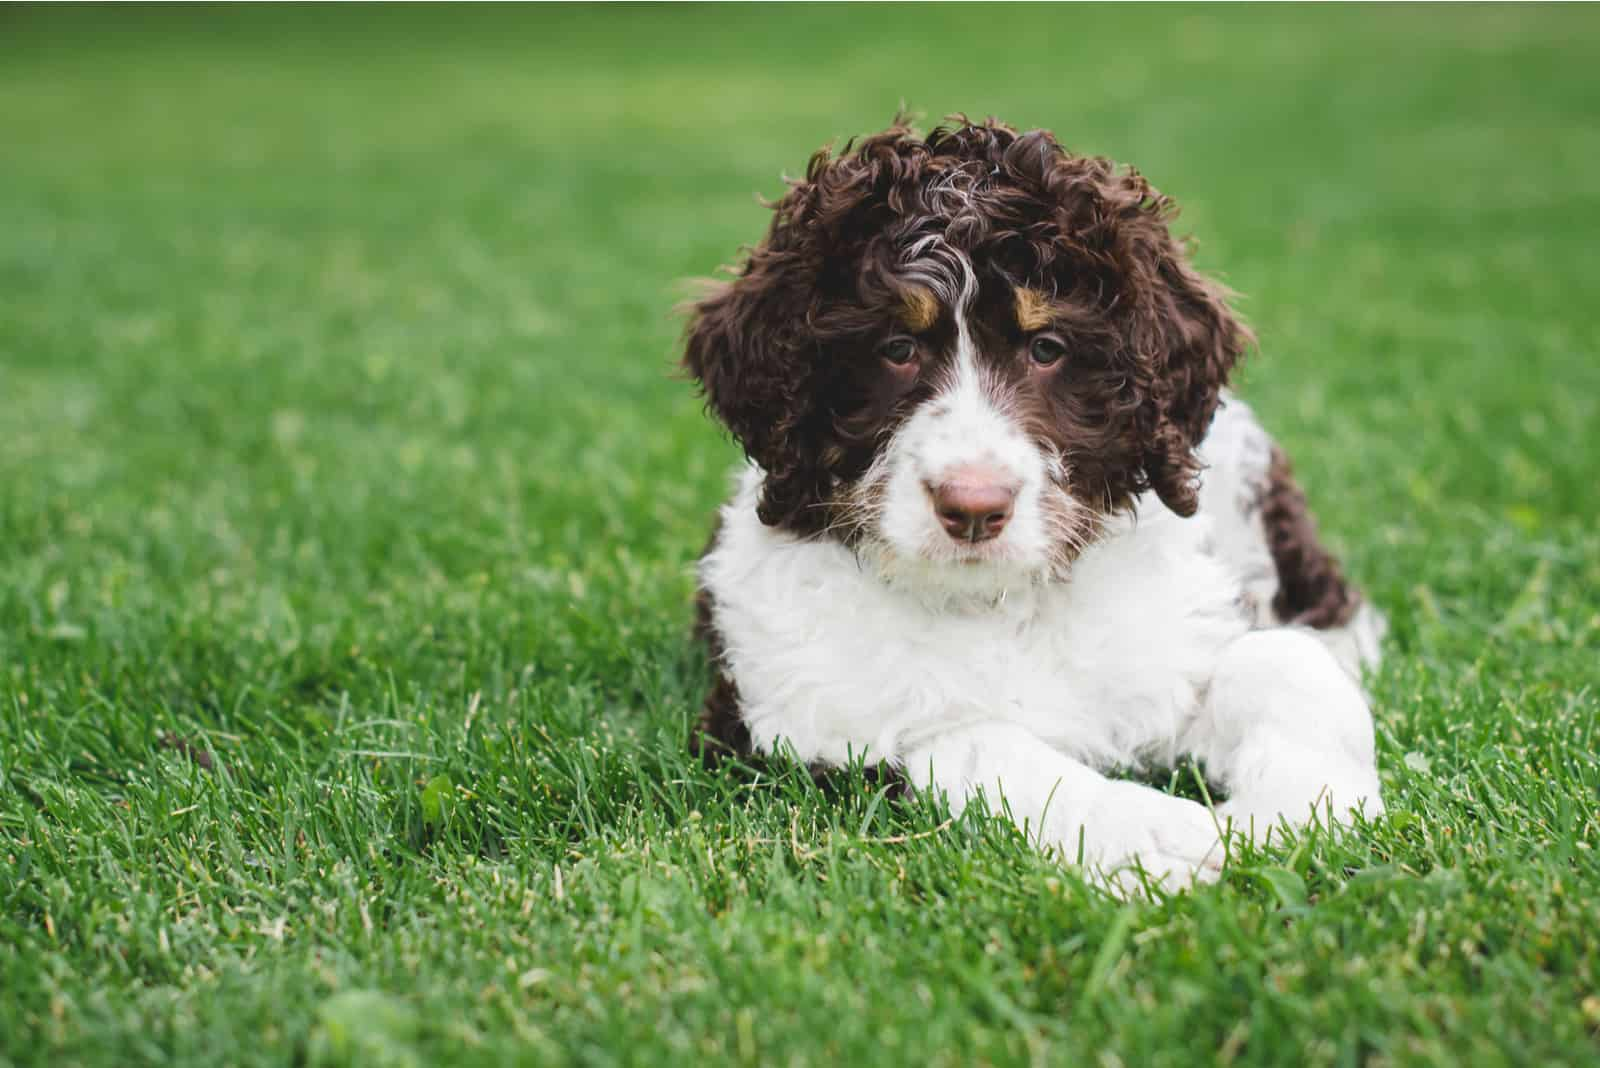 Adorable bernedoodle puppy laying on the grass